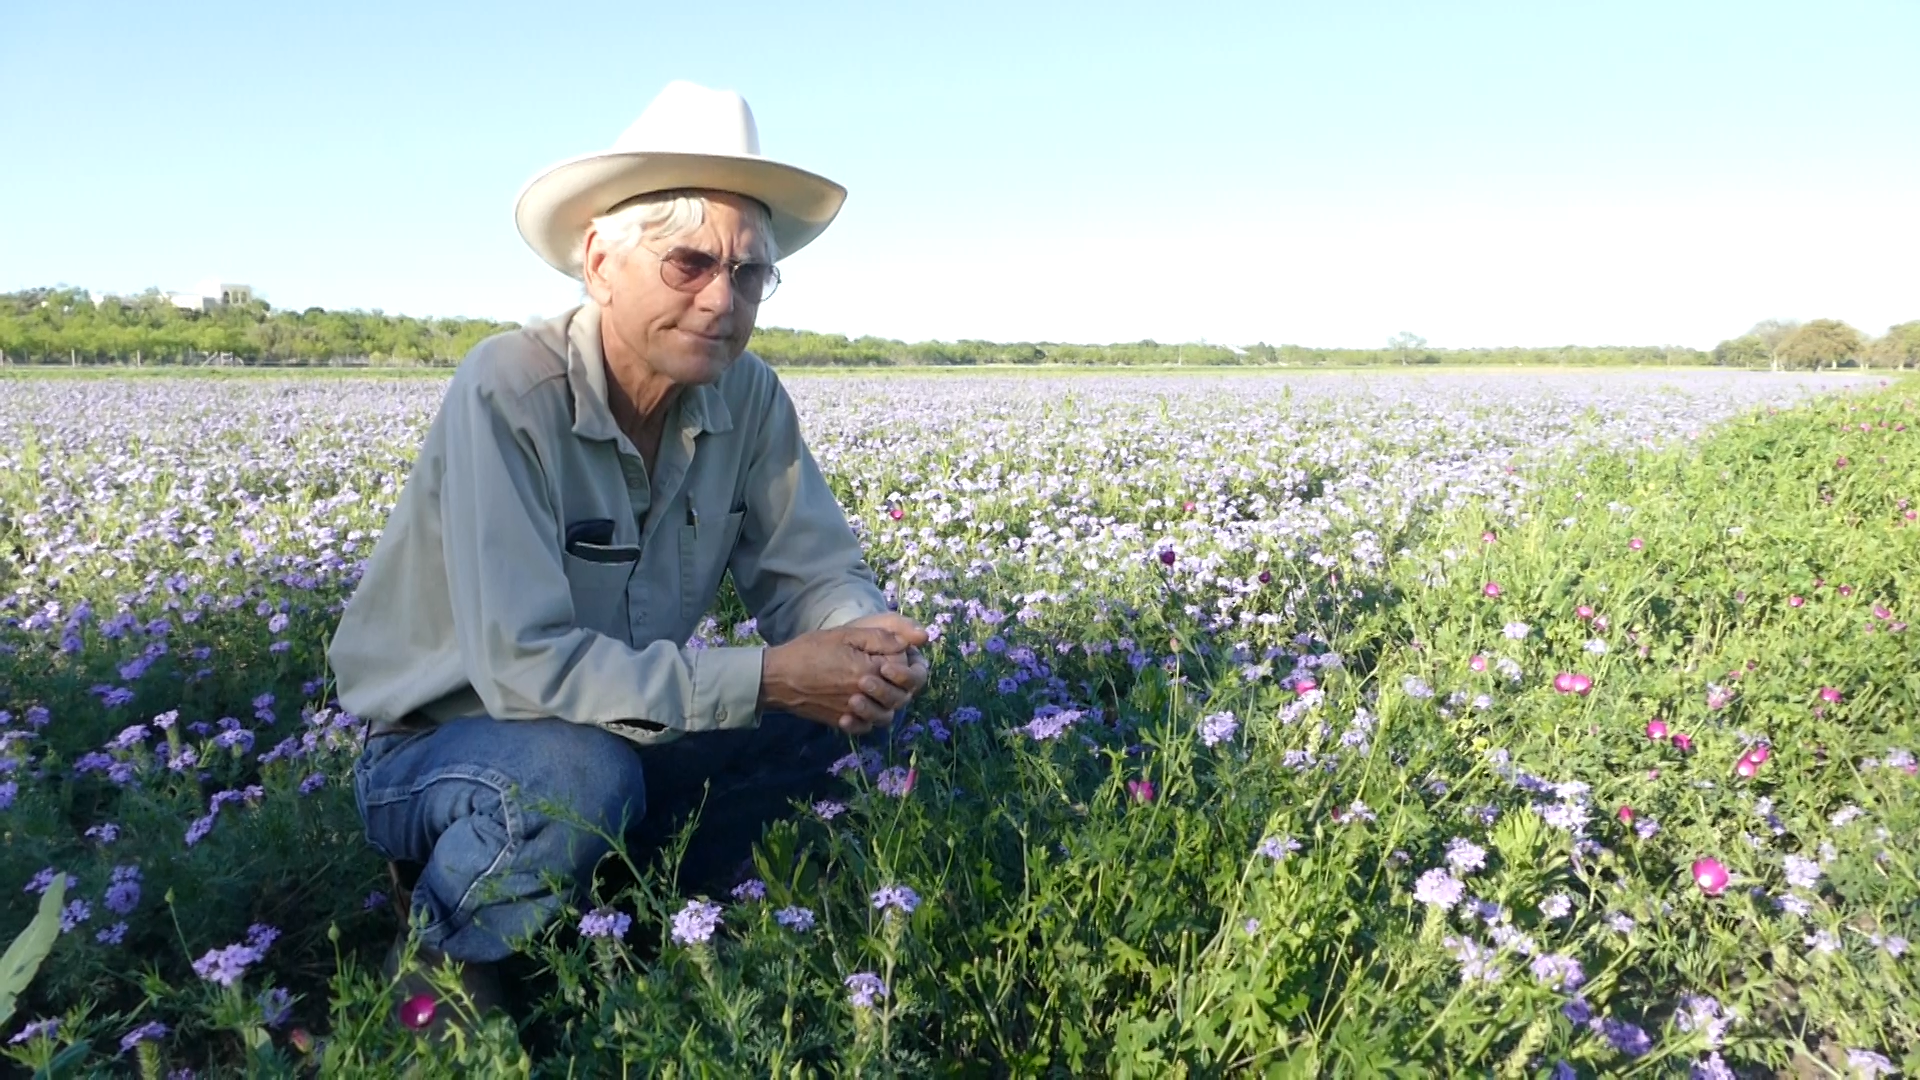 Bill among the native plants he grows as part of Native American Seed Company.